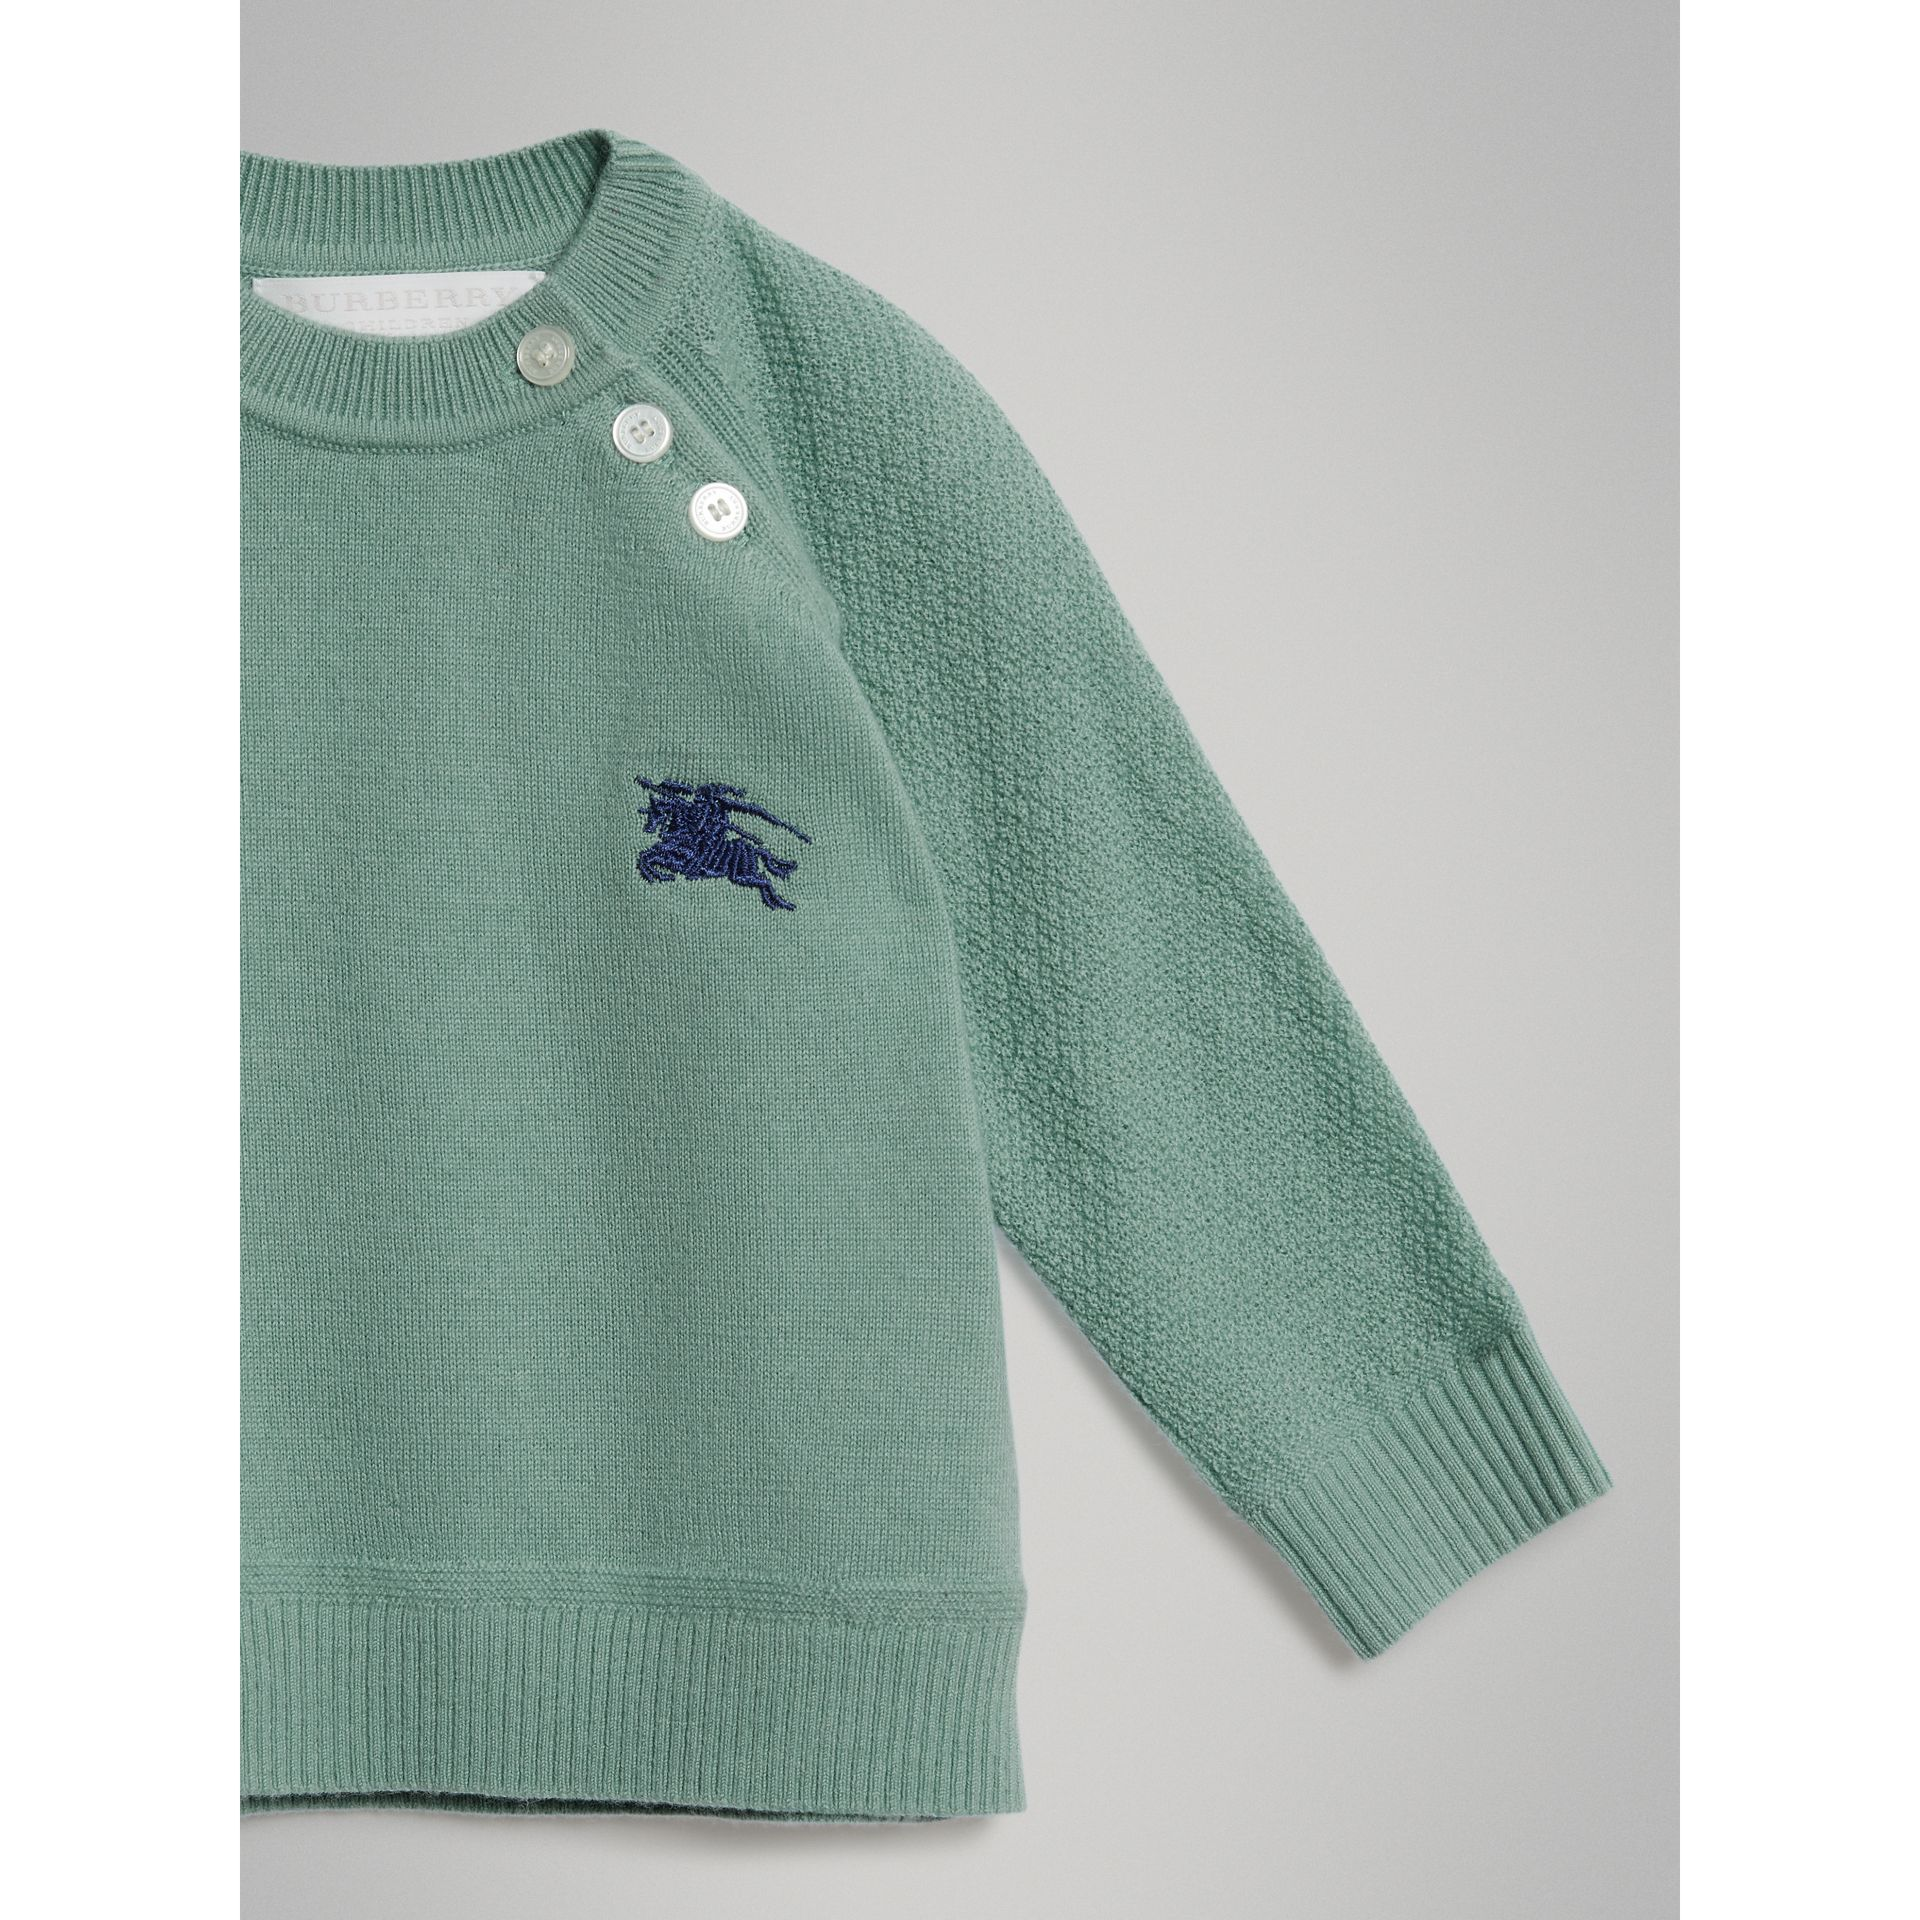 Contrast Motif Cashmere Sweater in Dusty Mint Melange - Children | Burberry Singapore - gallery image 4